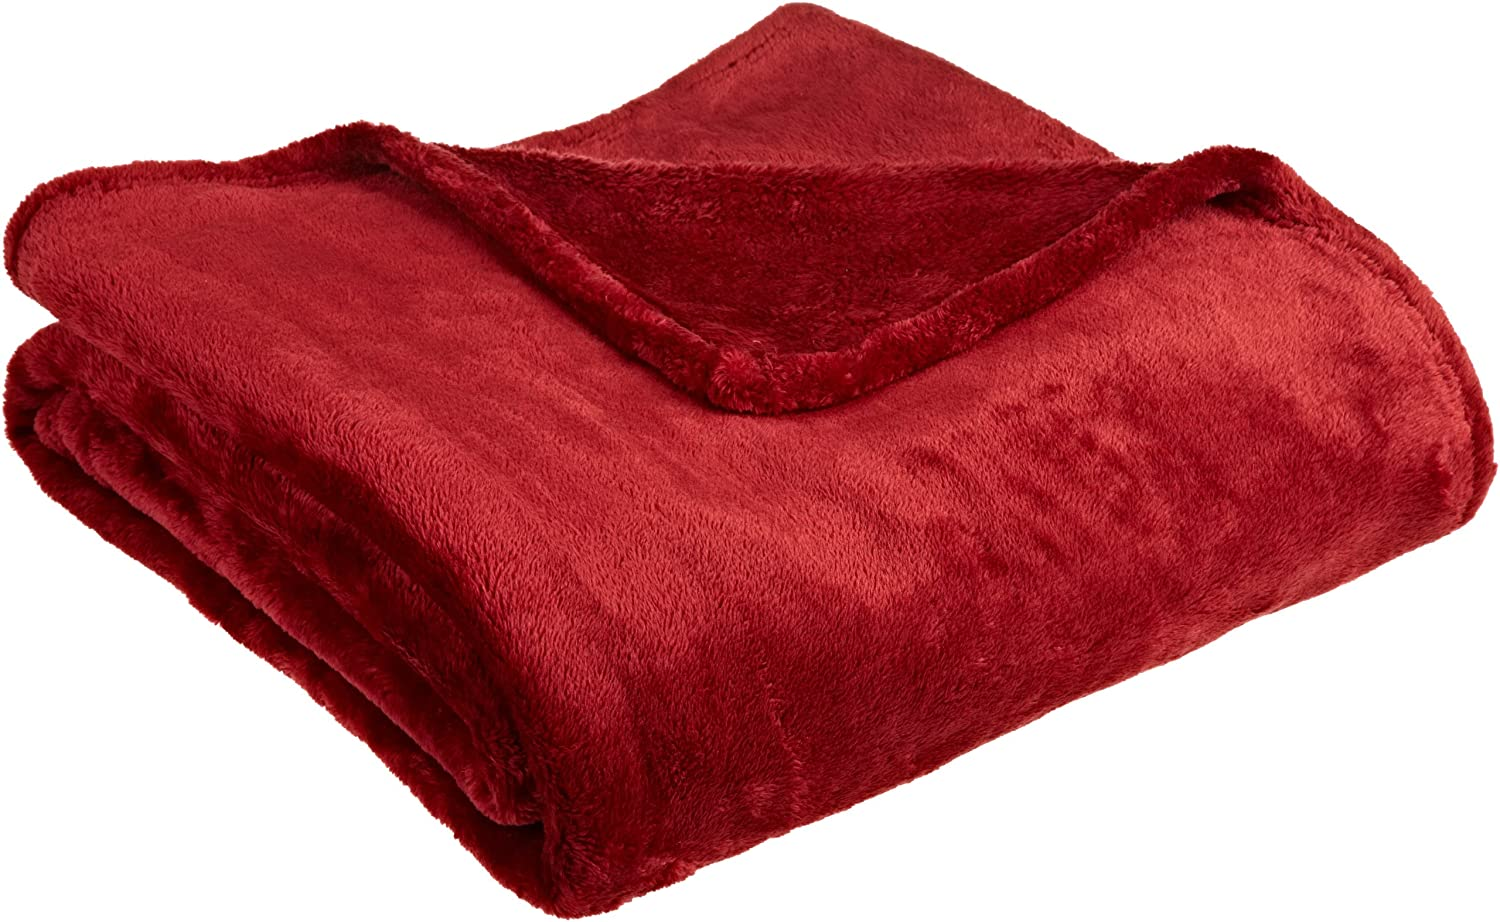 Northpoint Cashmere Plush Velvet Throw, Burgundy, 50x60 Northpoint Trading Inc. 70515